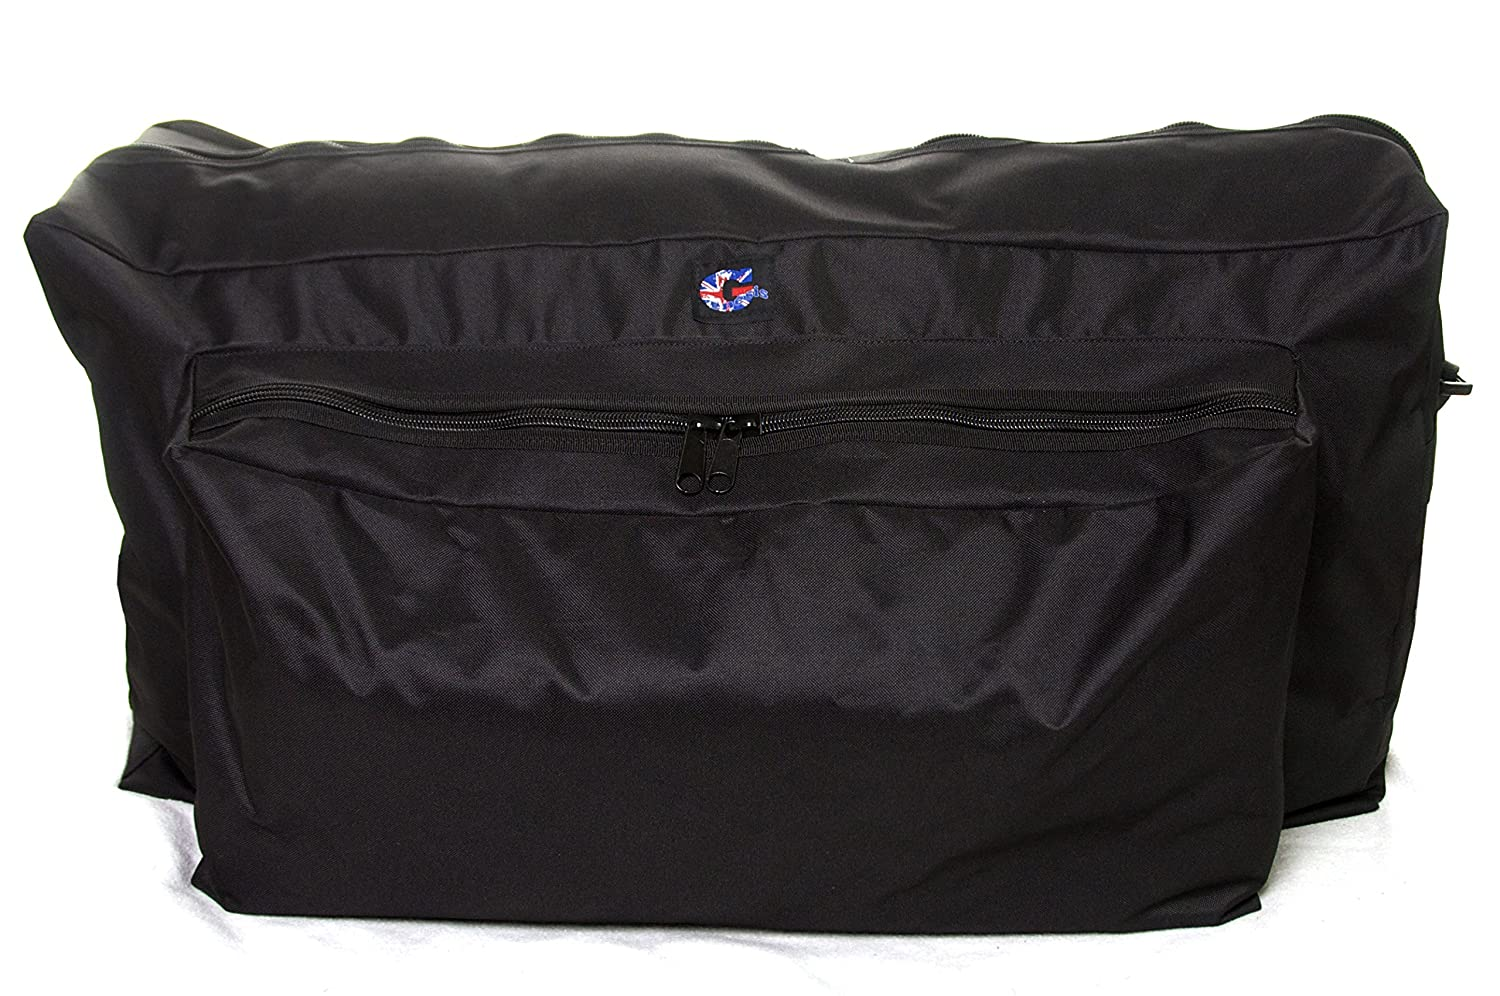 Genesis Pram Travel Bag. Made to measure pushchair bags for air travel. Midwater Luggage